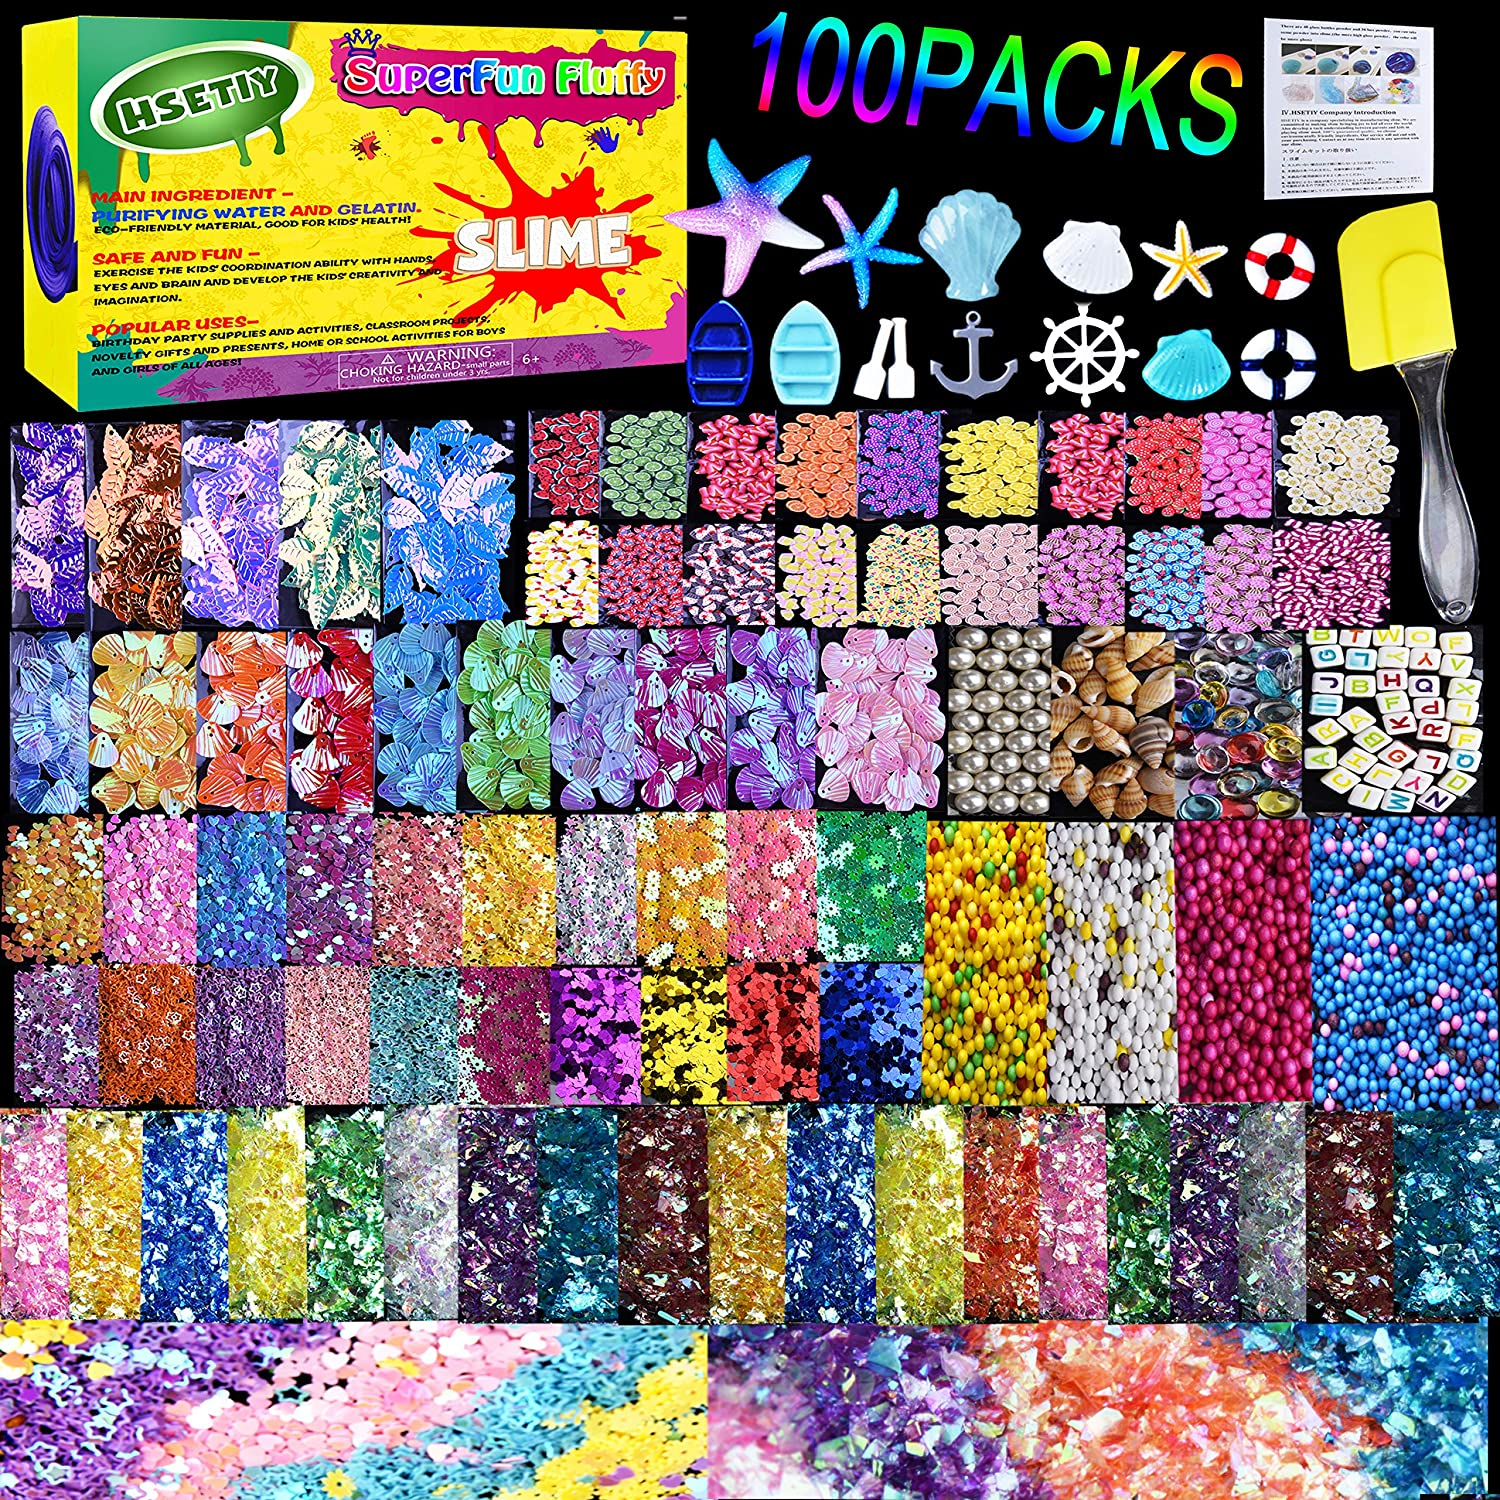 HSETIY Slime Supplies Kit, 100 Pack Slime Stuff Charms Include Floam Balls, Cake Flower Fruit Slices, Fishbowl Beads, Shell, Slime Accessories for DIY Slime Making Kit, Slime Party Decoration(No Slim